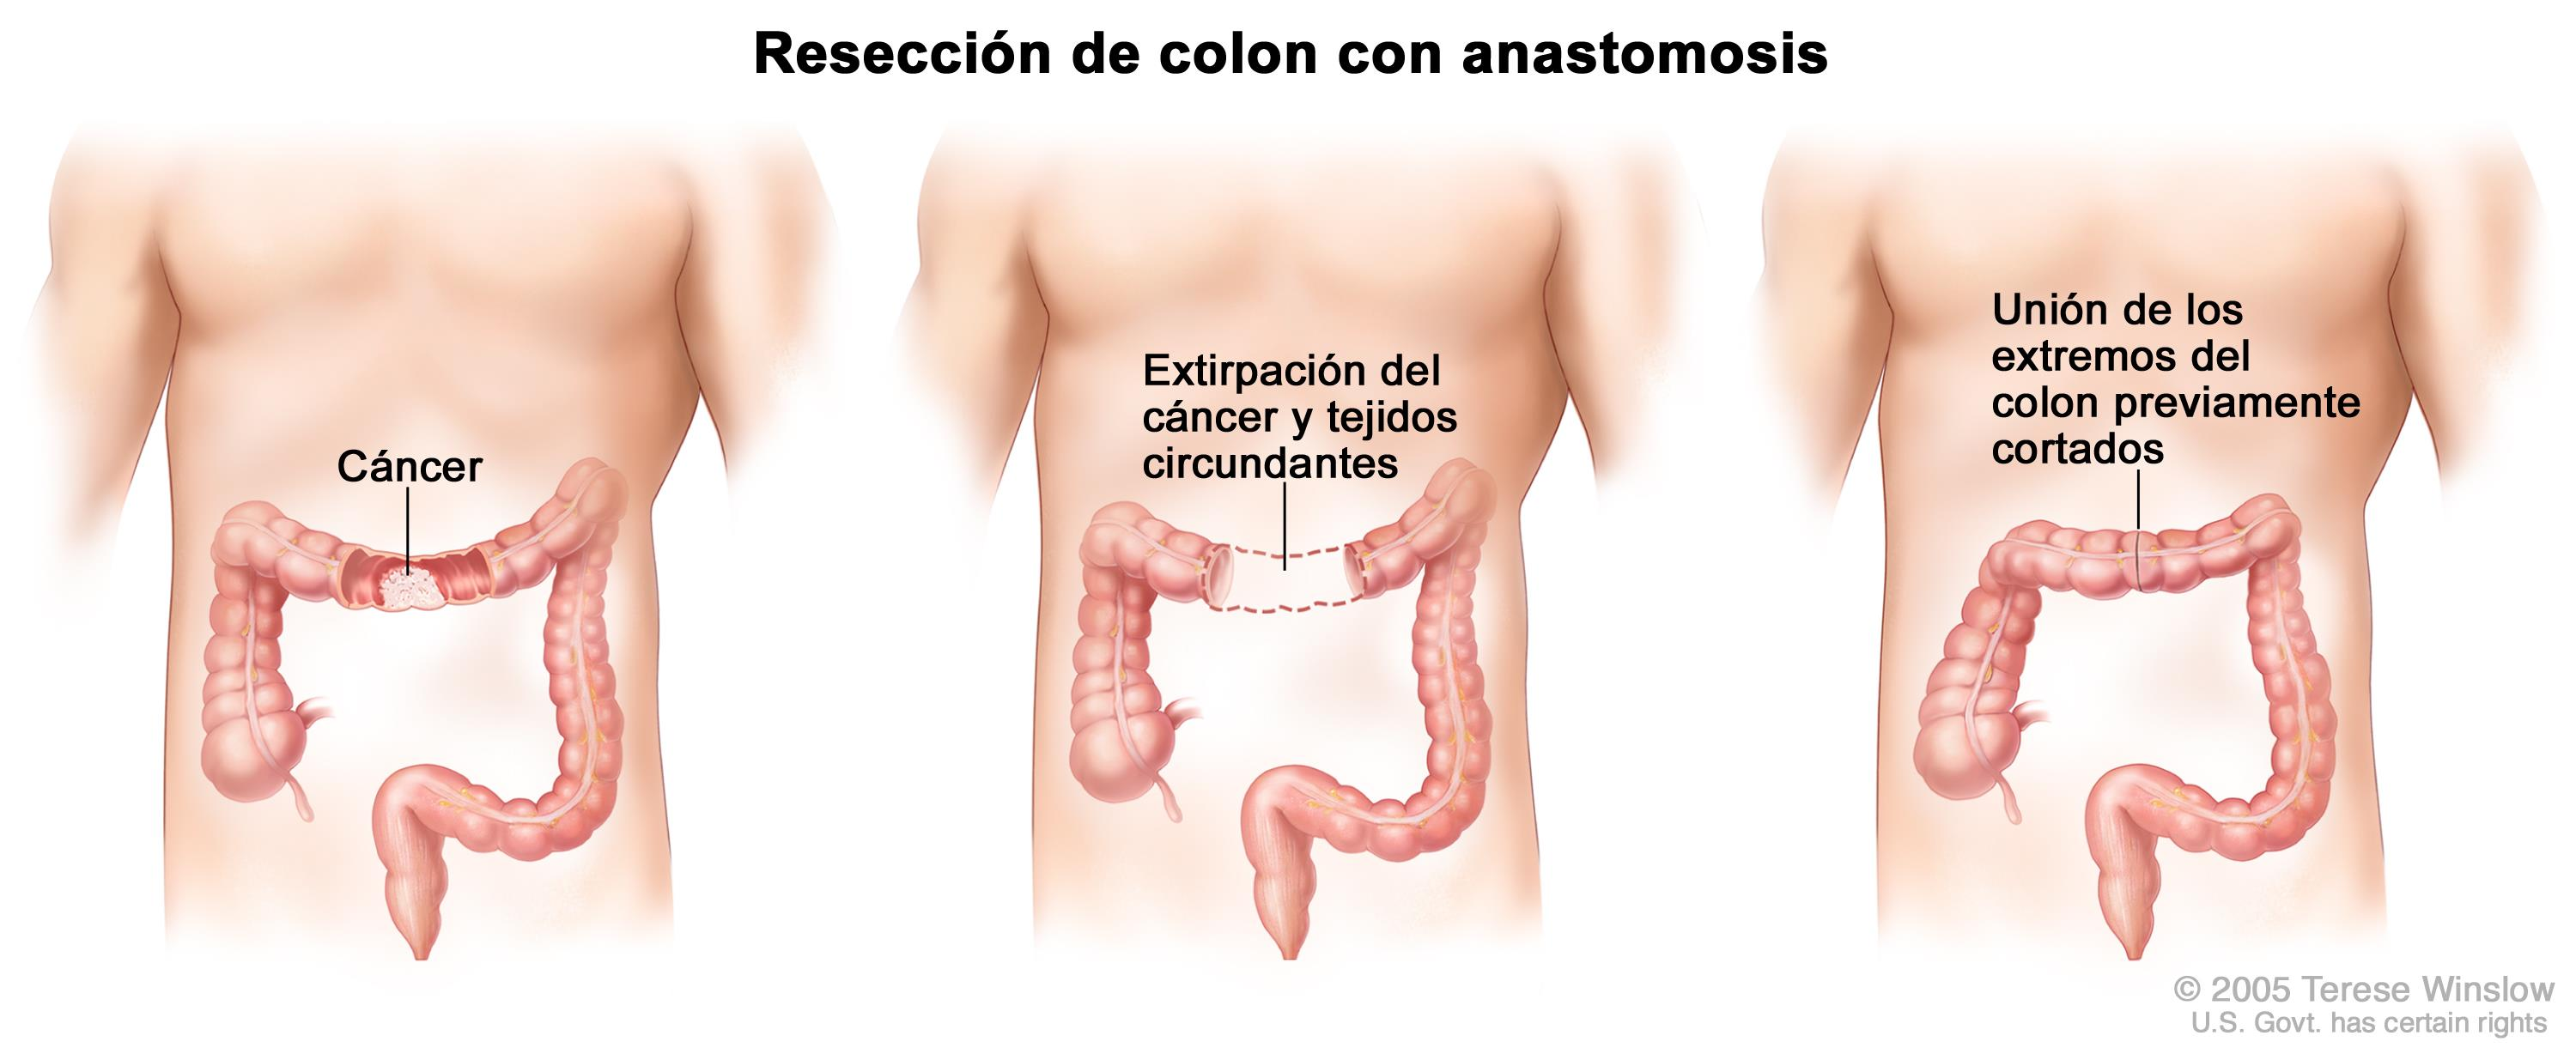 cancer de colon se cura